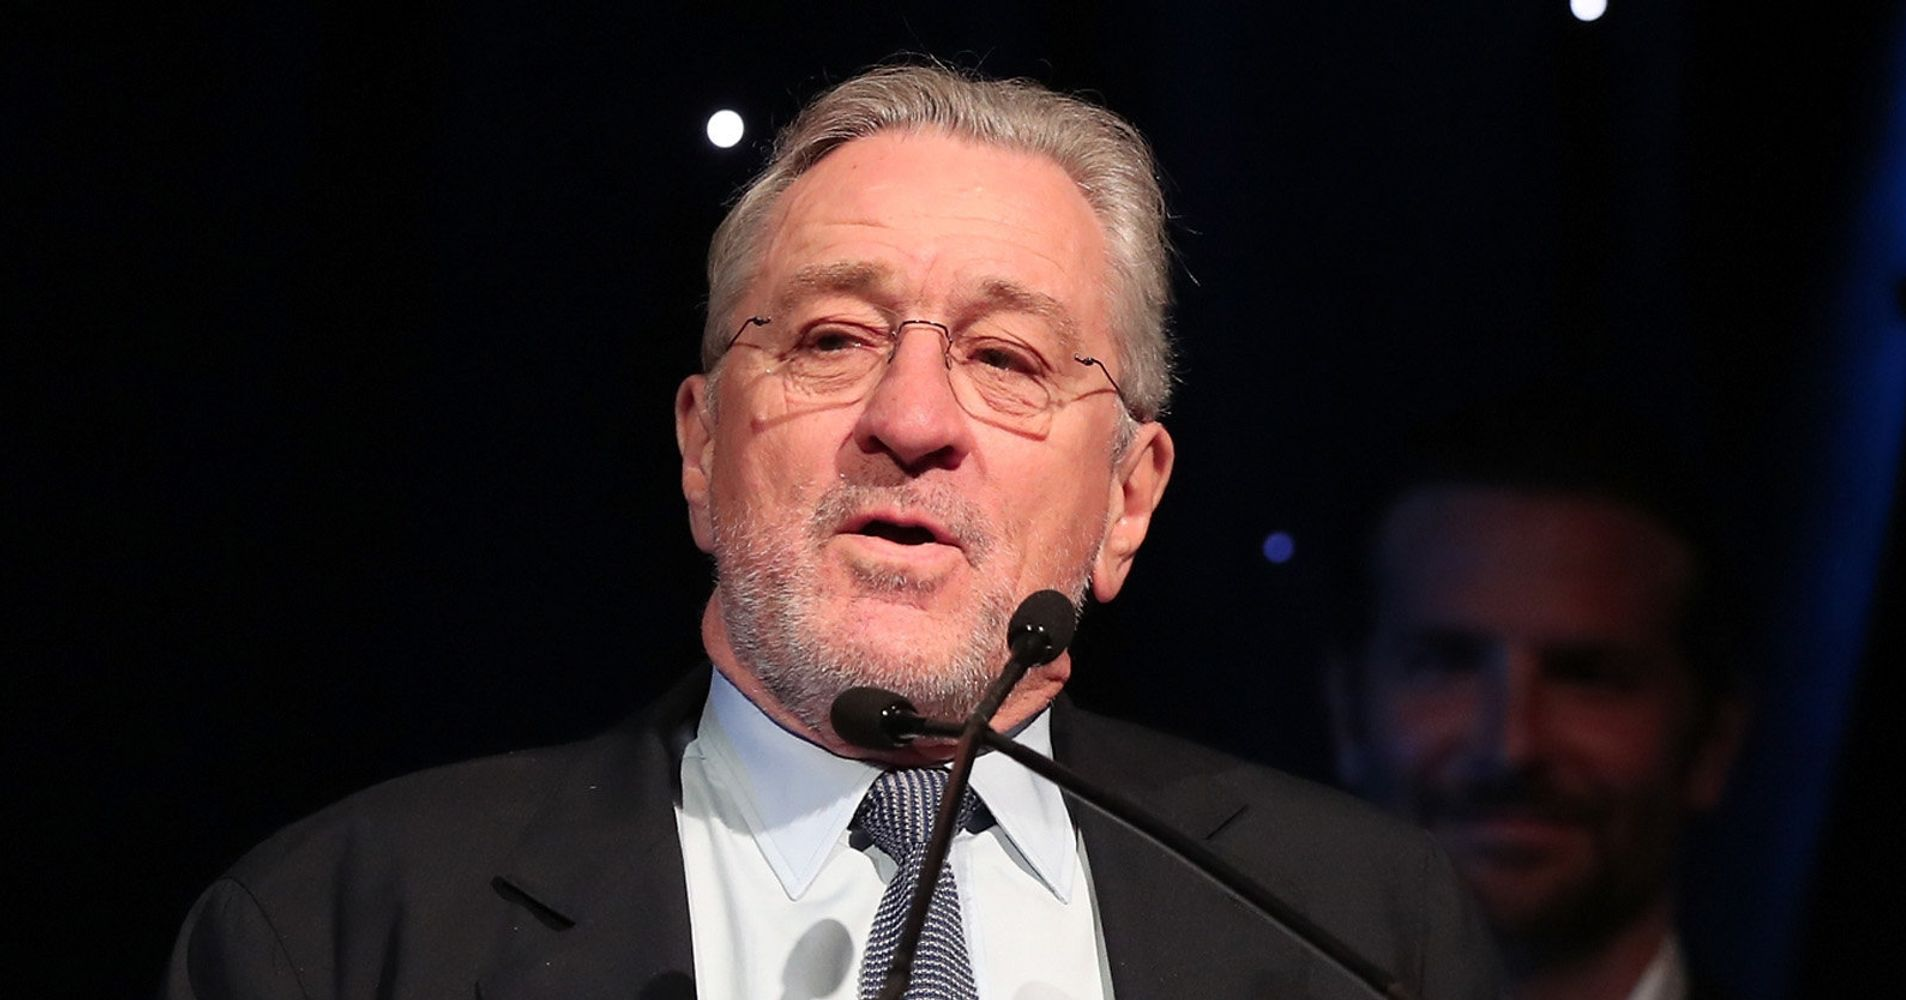 Robert De Niro Again Tears Into 'Idiot' Trump, And Vows Not To Stop